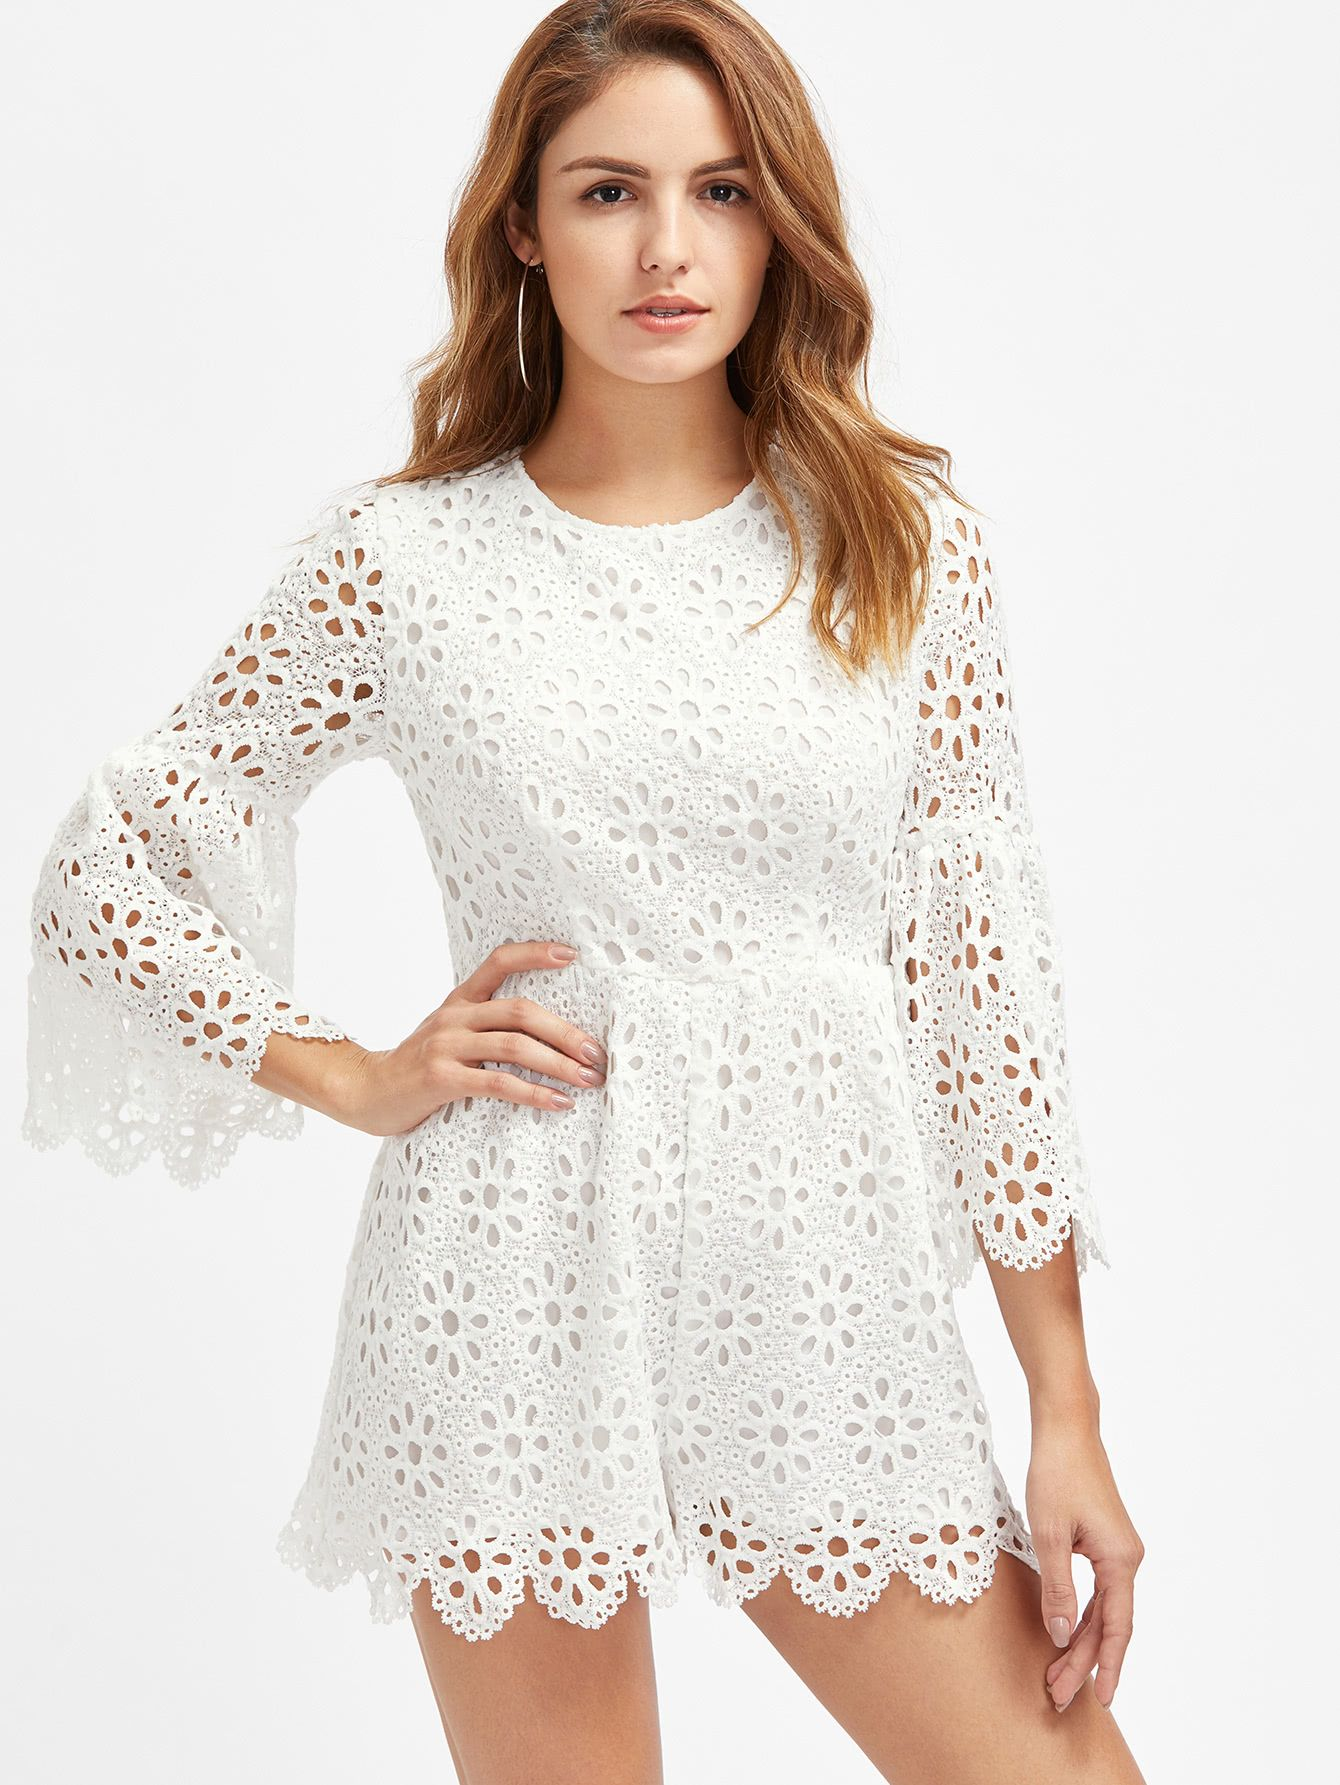 b16be6910ff777 Shop Trumpet Sleeve Scalloped Eyelet Floral Crochet Overlay Playsuit  online. SheIn offers Trumpet Sleeve Scalloped Eyelet Floral Crochet Overlay  Playsuit ...